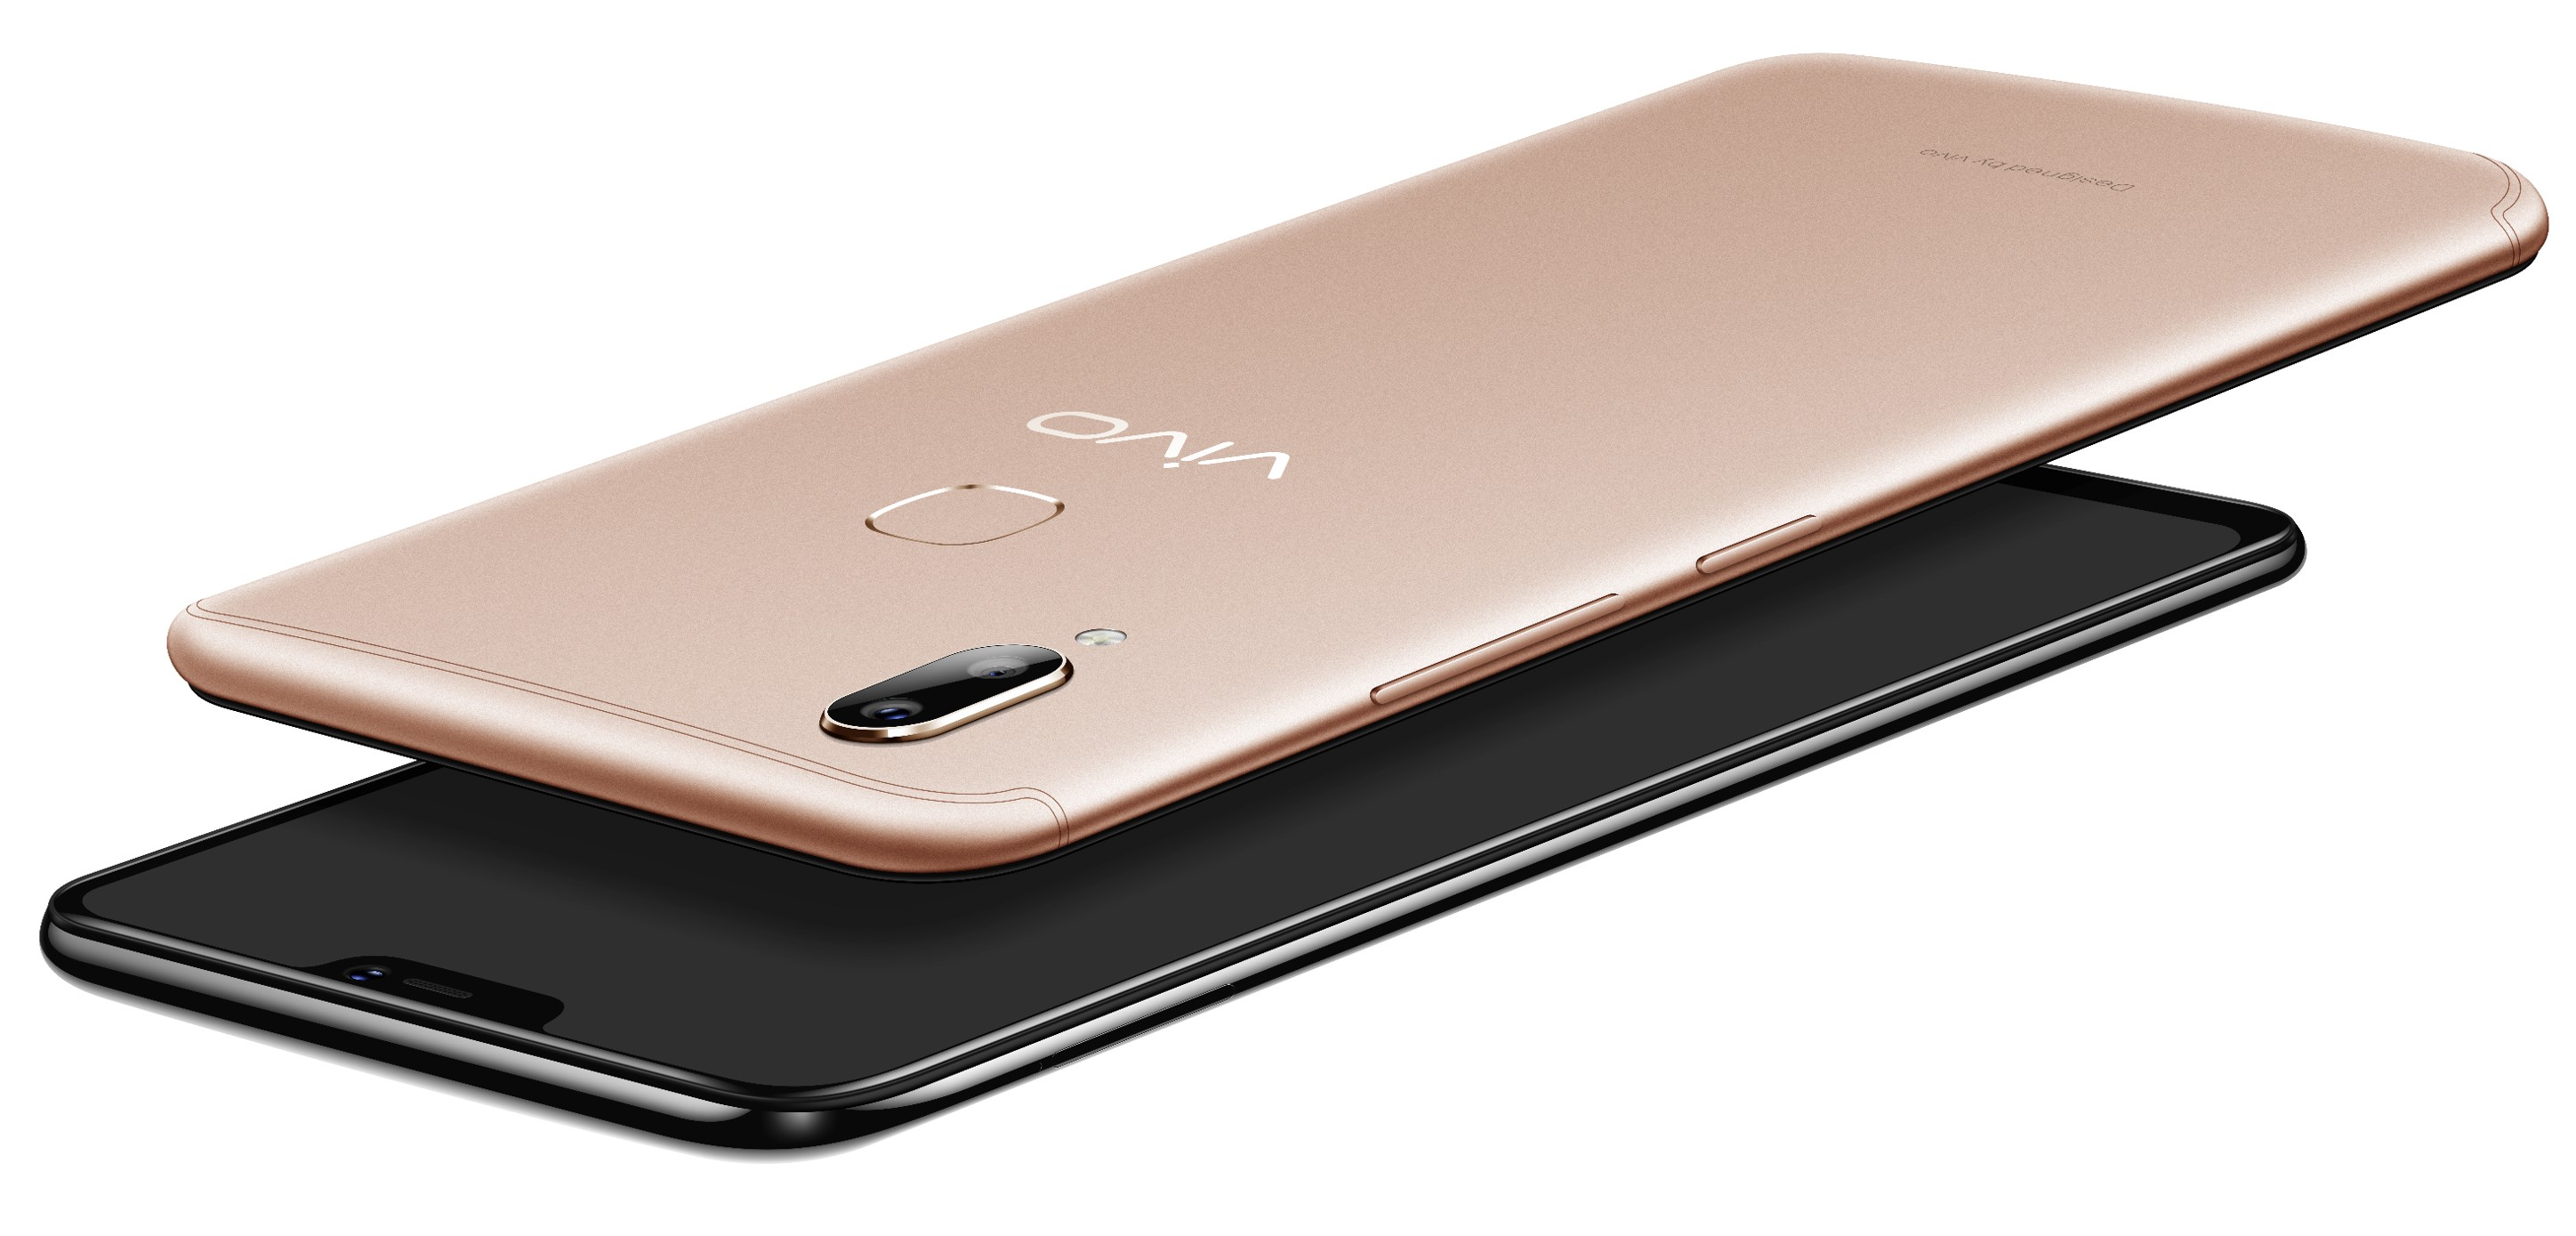 6) Vivo launches V9 Youth Edition in India, Lite version of the original V9